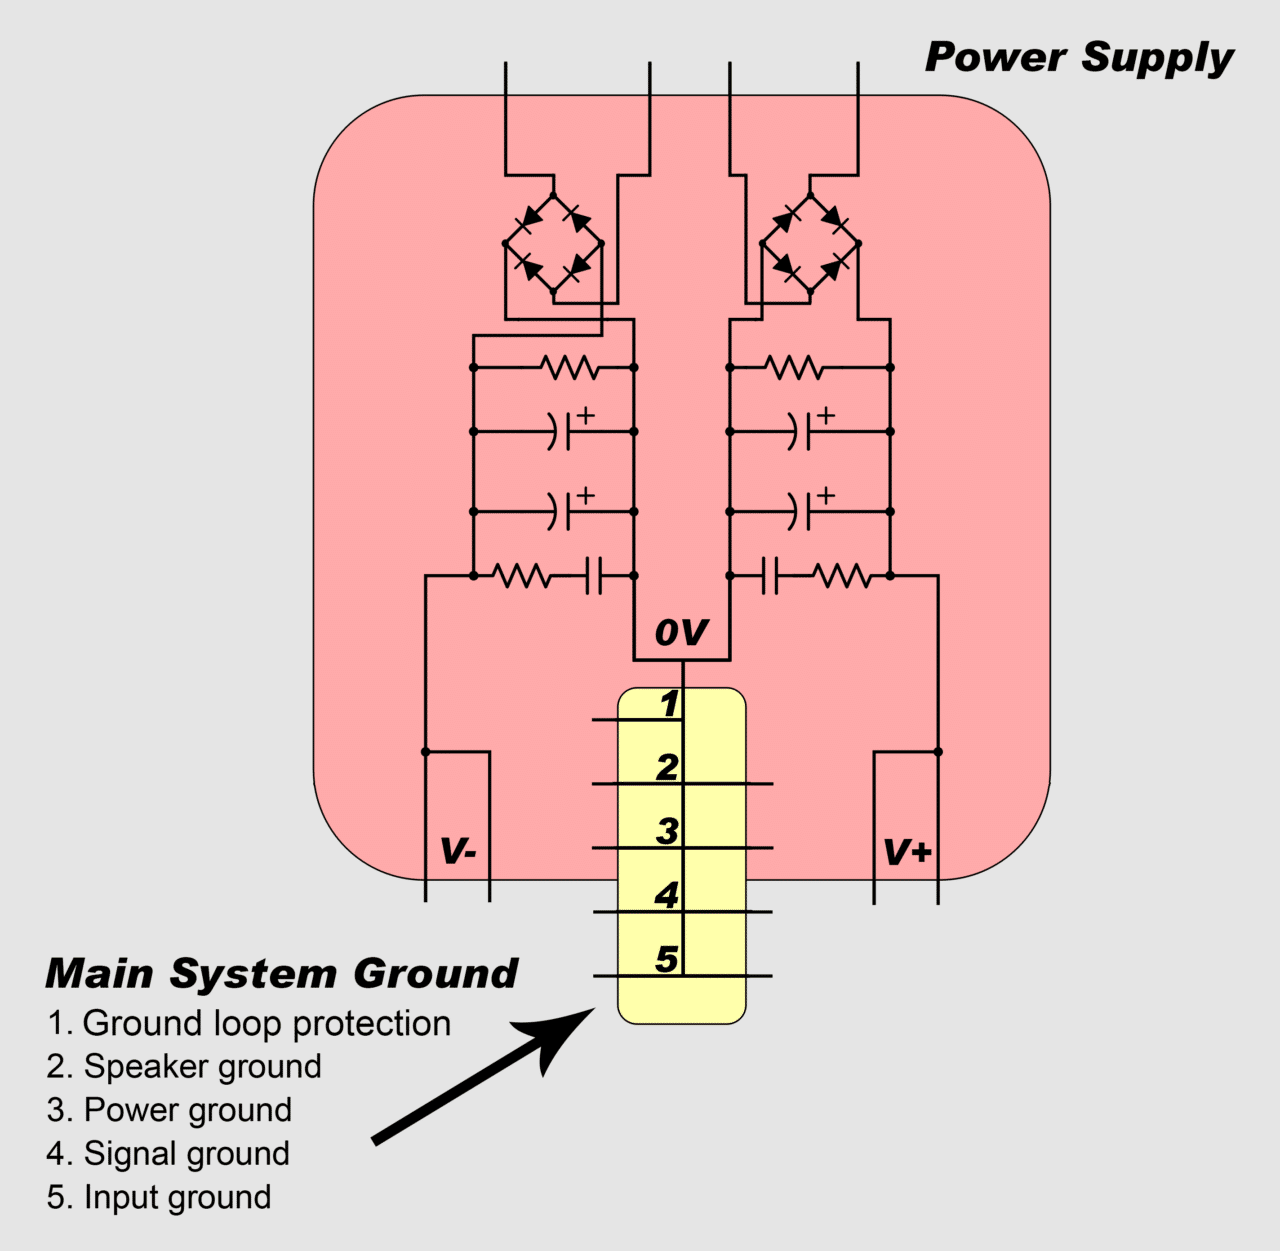 How To Design And Build An Amplifier With The Tda2050 Circuit Basics Diagram Also Maker 2000 Download On Electric Schematic Ground Networks Are Connected Main System In A Particular Order So That High Currents Only Flow Through Low Current Grounds For Very